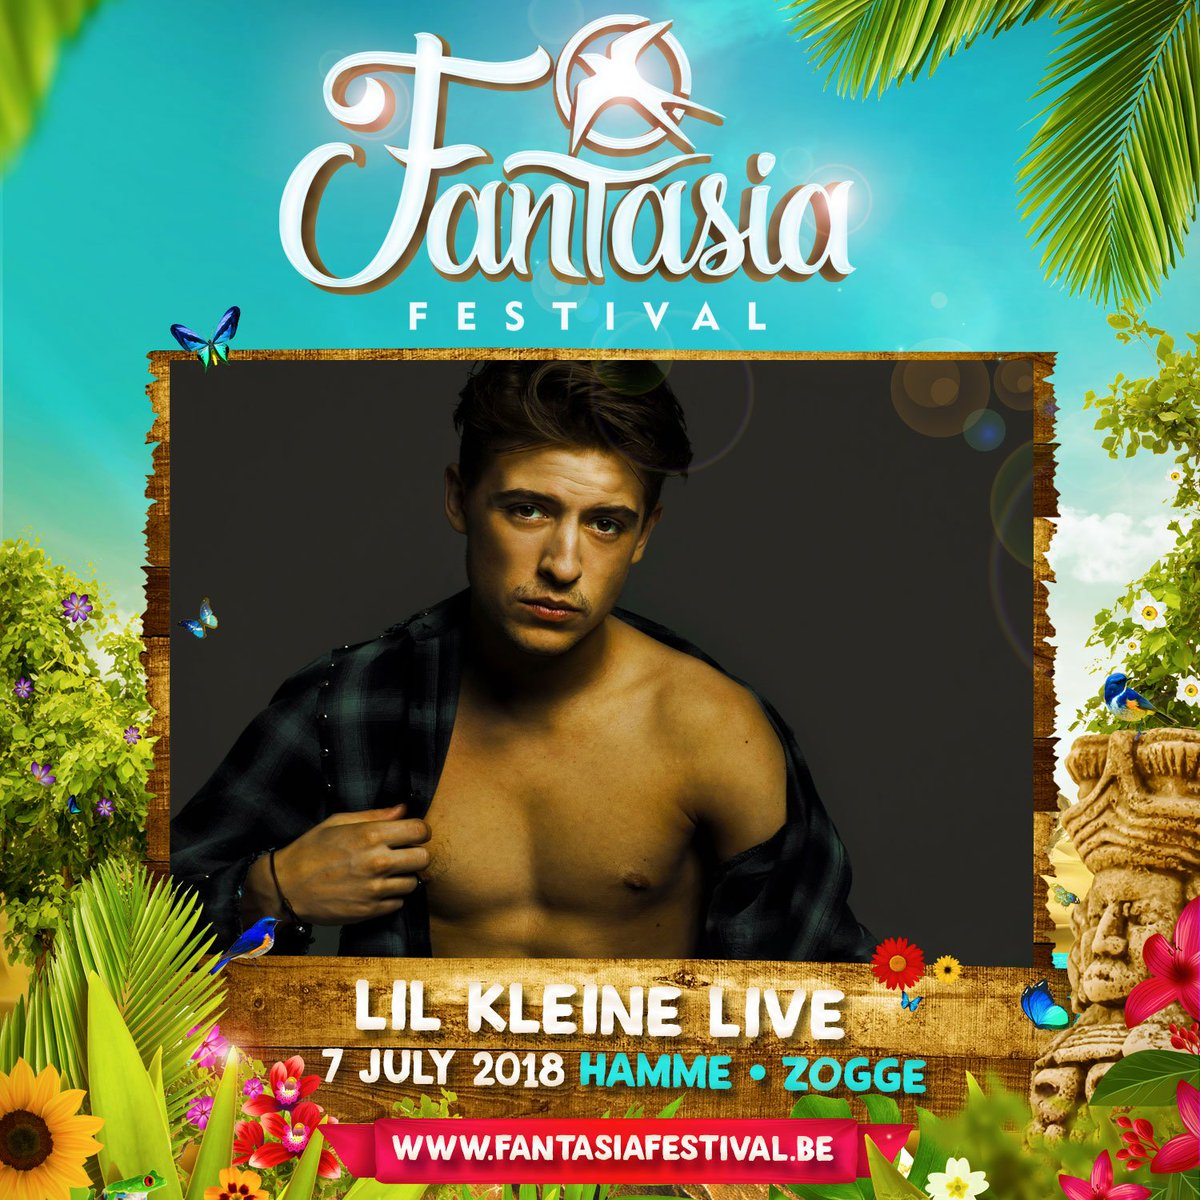 3ca9b2294 Scream and shout for Lil Kleine Live Tickets   http   www.fantasiafestival.be tickets  FantasiaFestival2018  spreadtheword   share  tagpic.twitter.com  ...